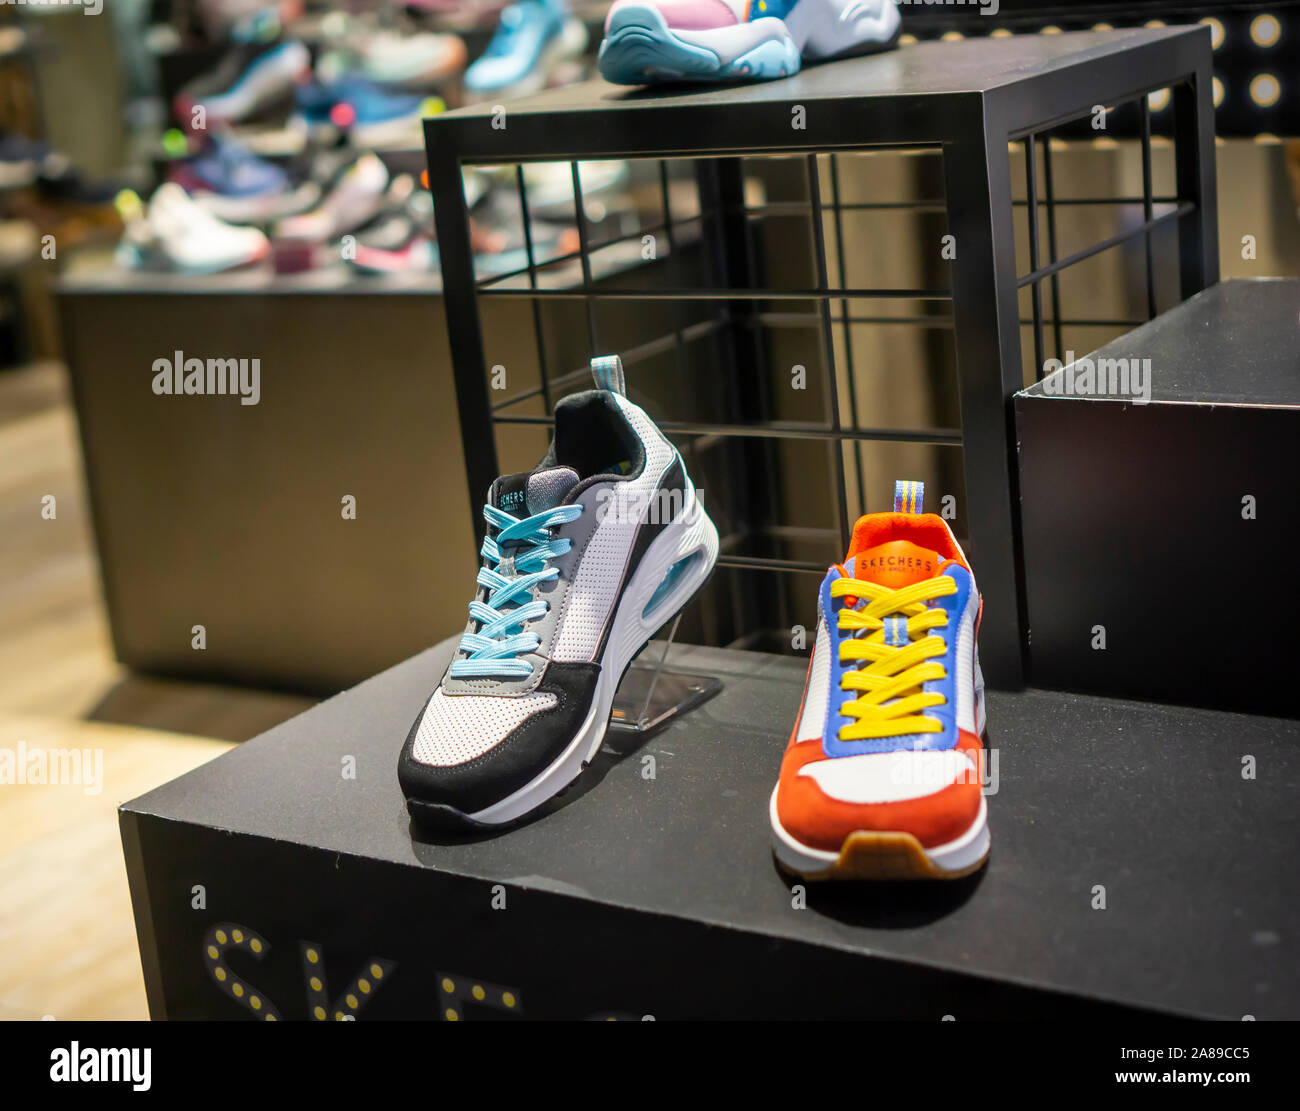 Skechers Shoes High Resolution Stock